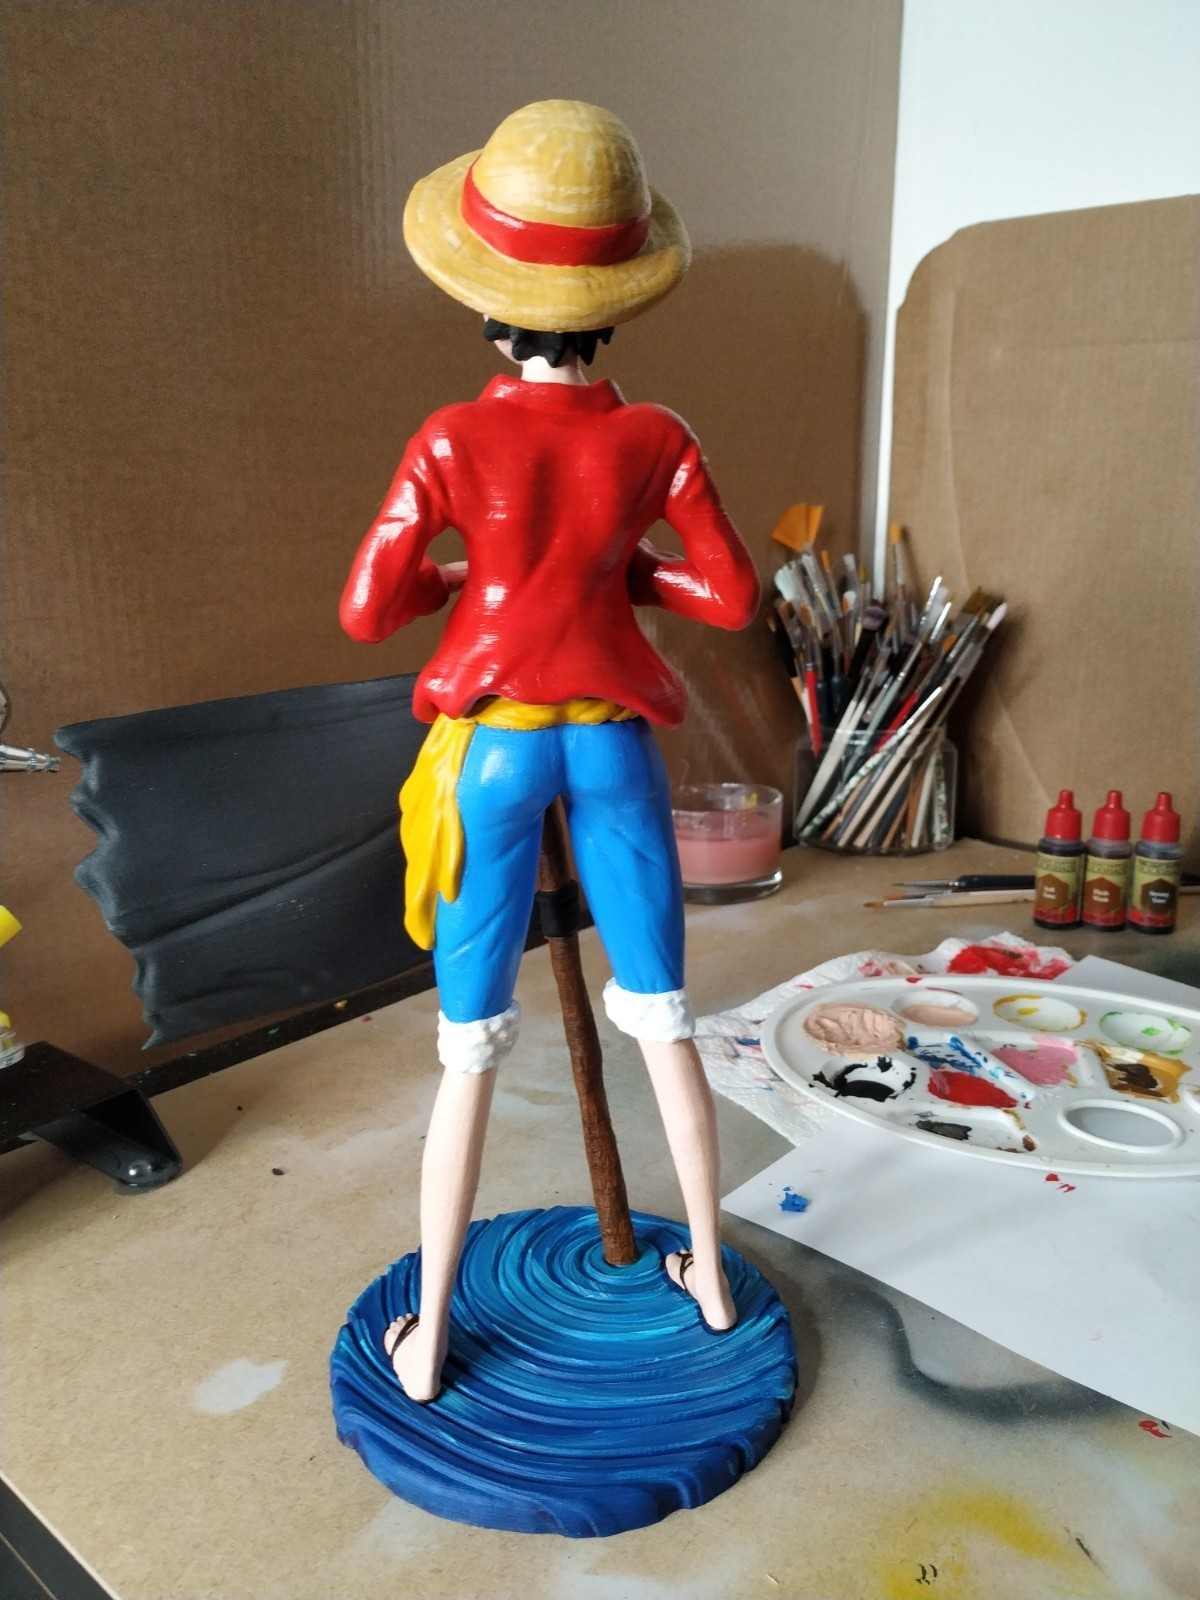 IMG_20190321_235747.jpg Download free STL file Monkey D Luffy • 3D printing object, BODY3D